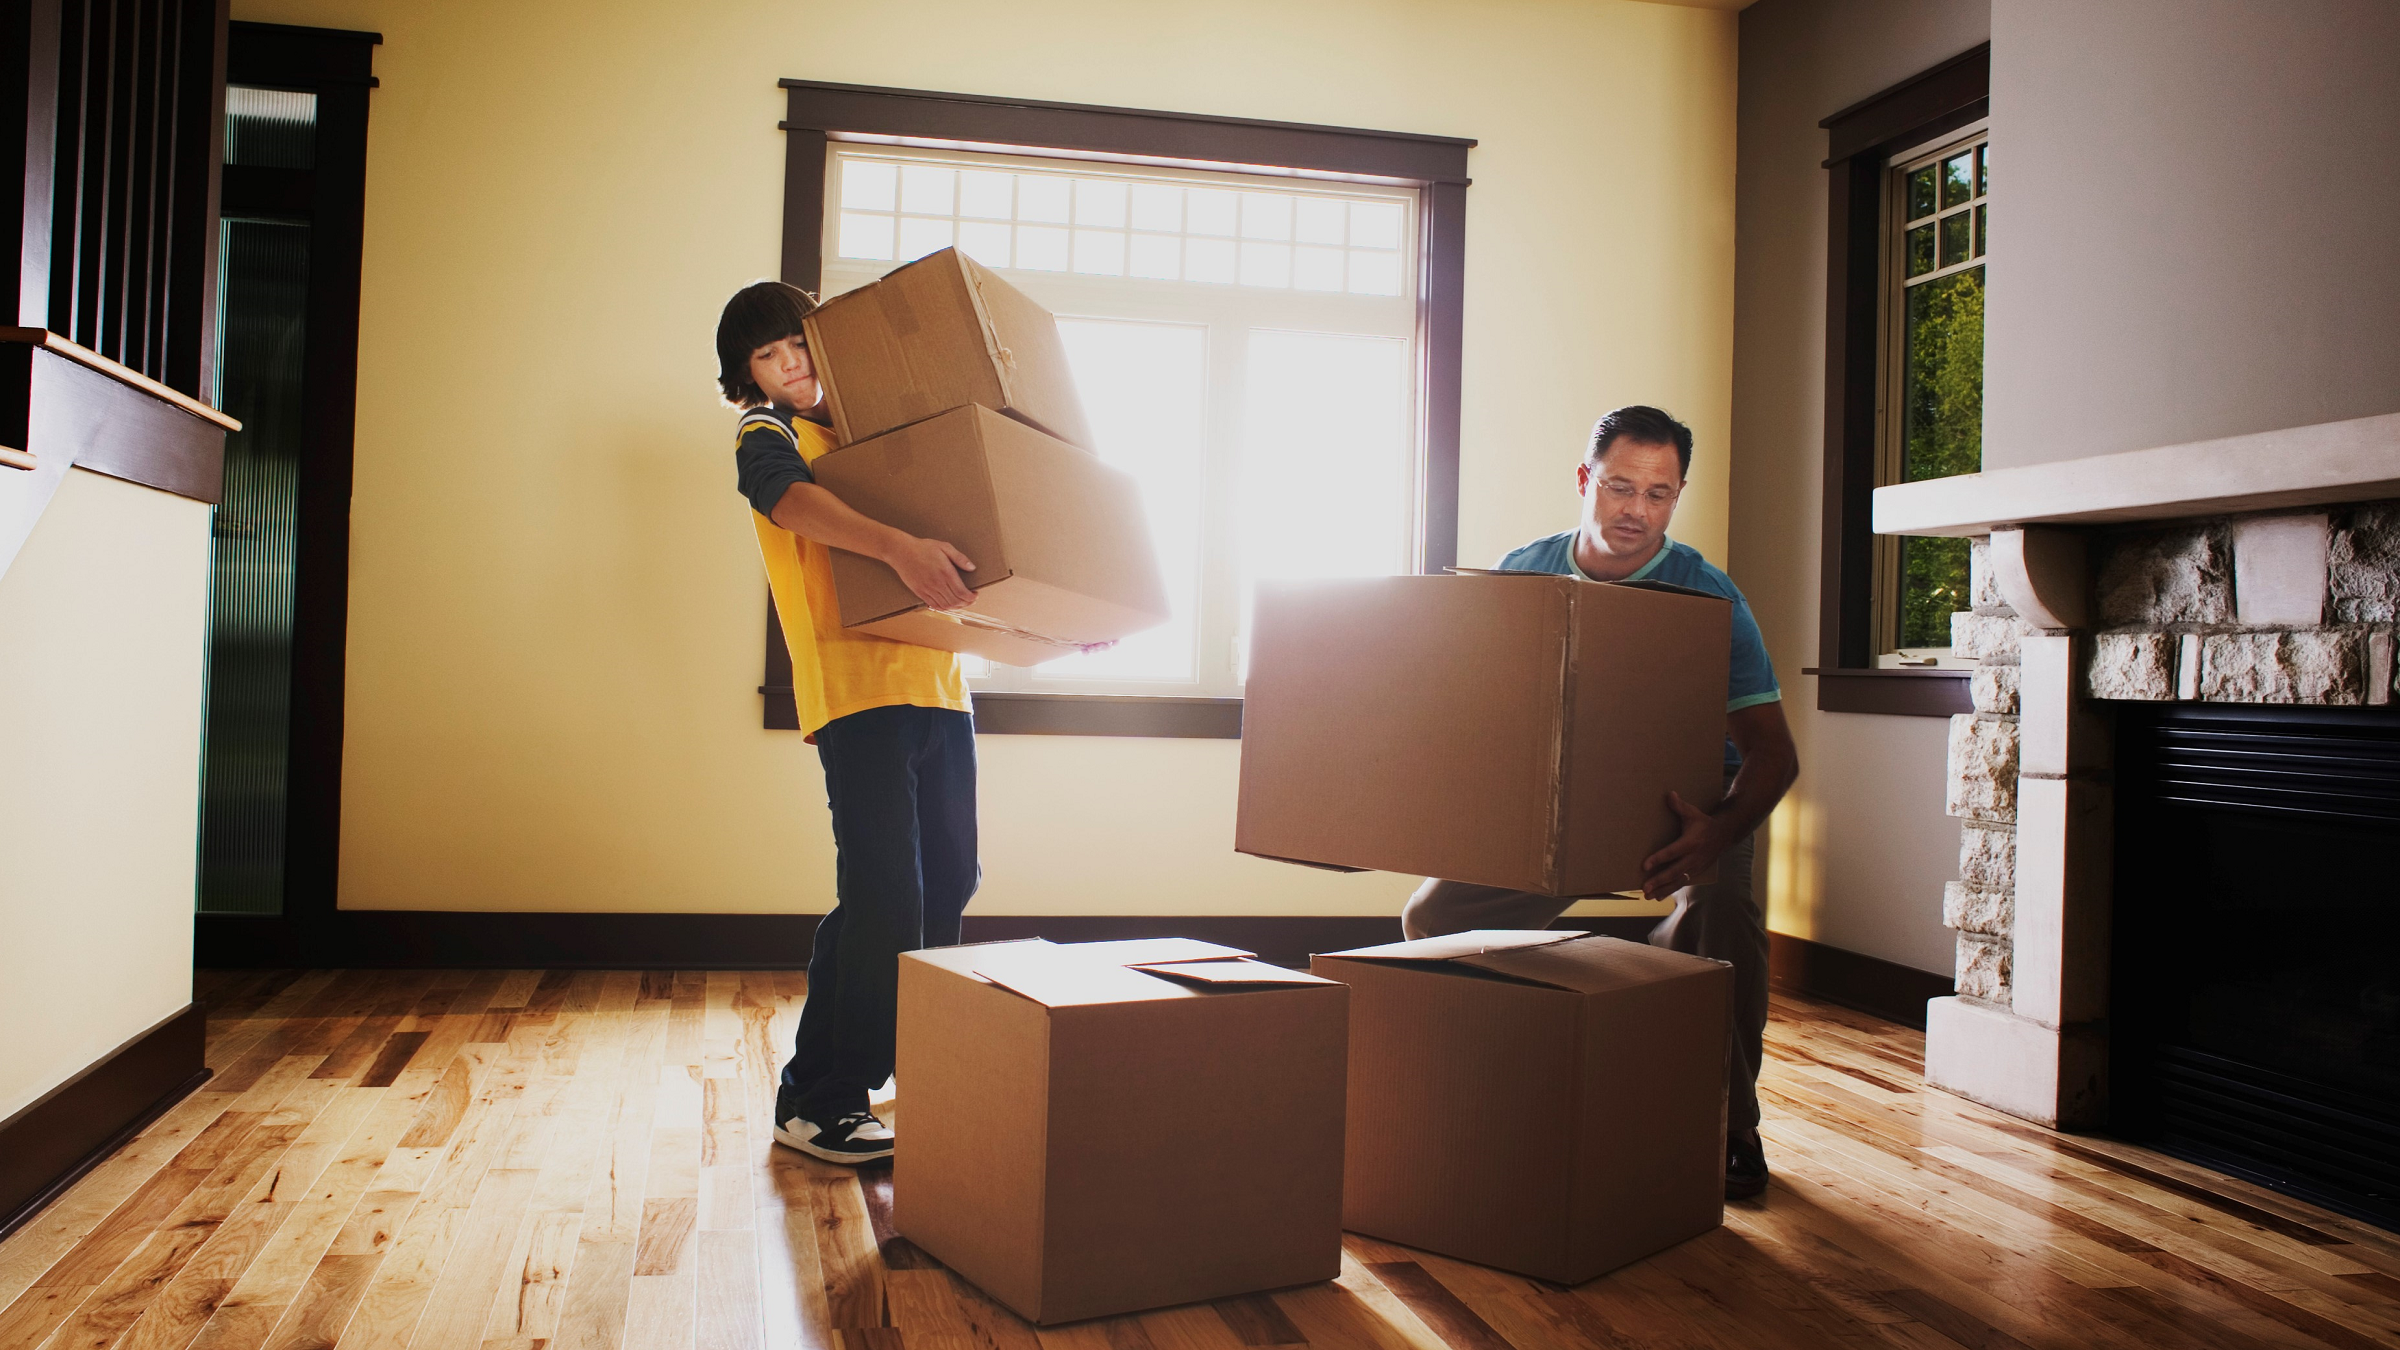 Father and son stacking moving boxes.